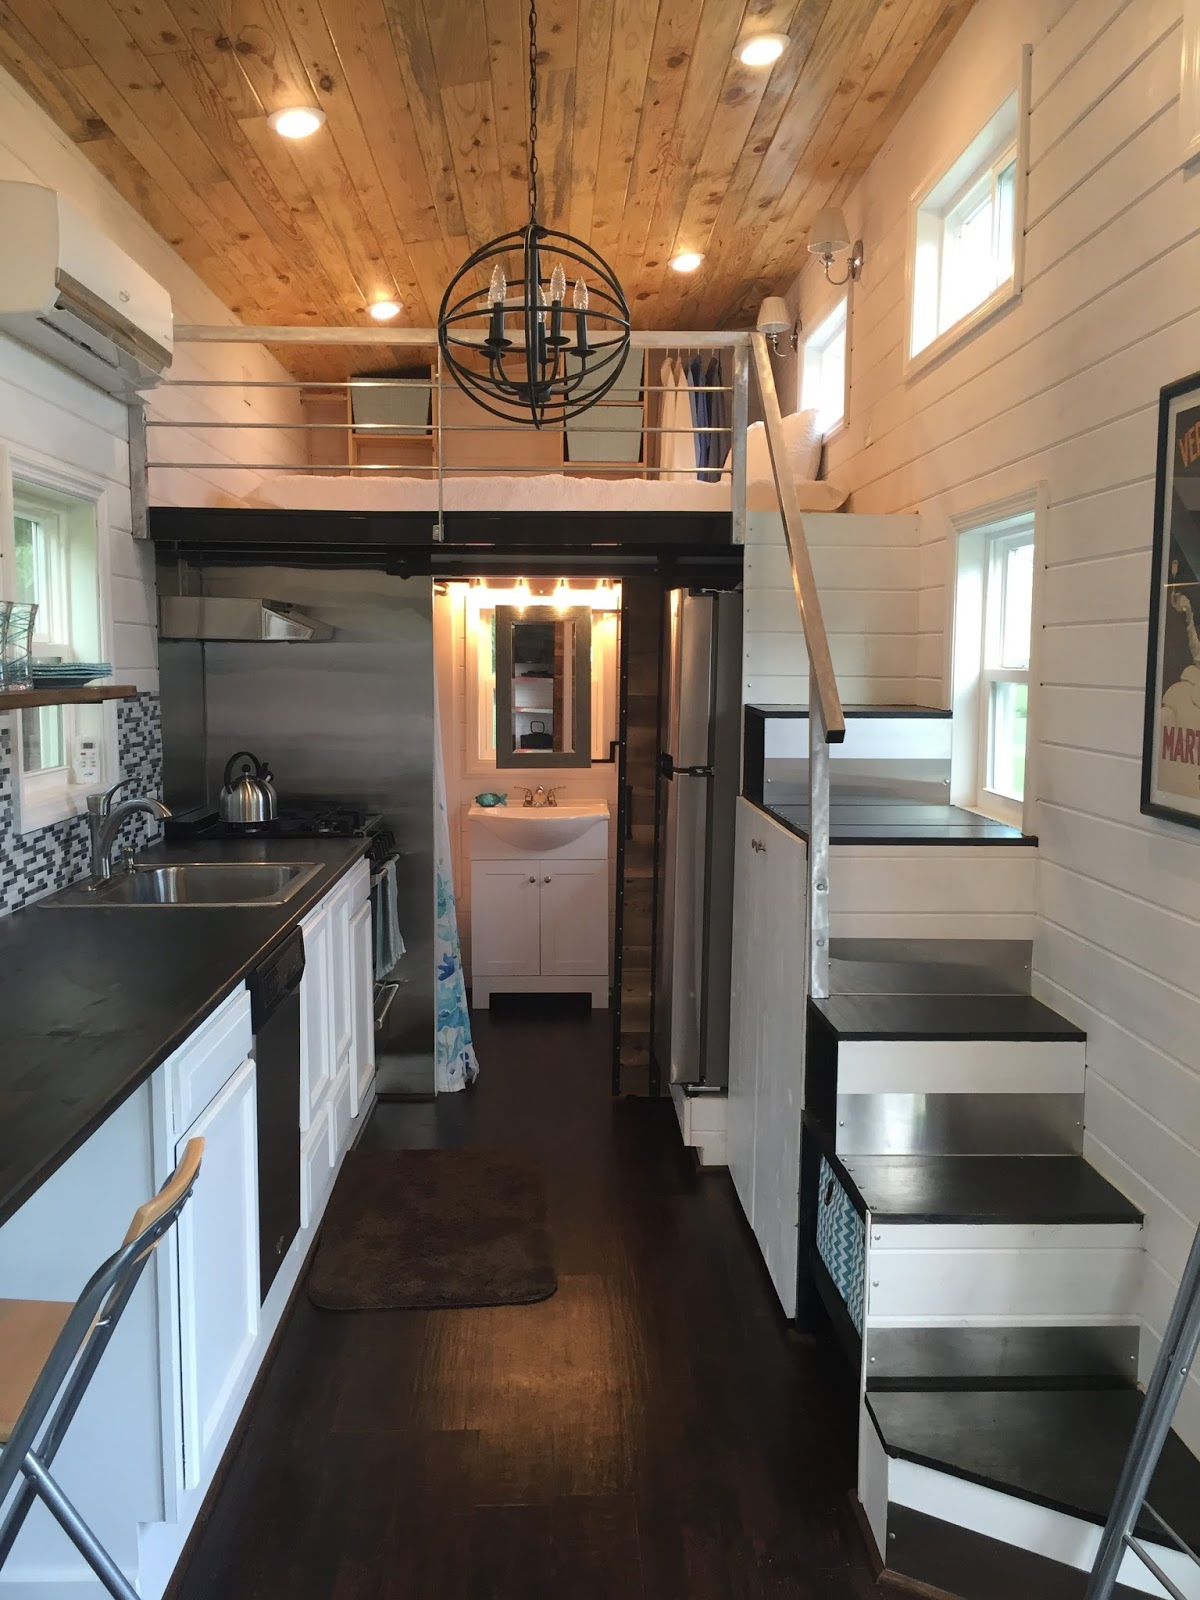 Tiny house town luxurious tiny house in tennessee 280 sq ft for Small luxury homes interior